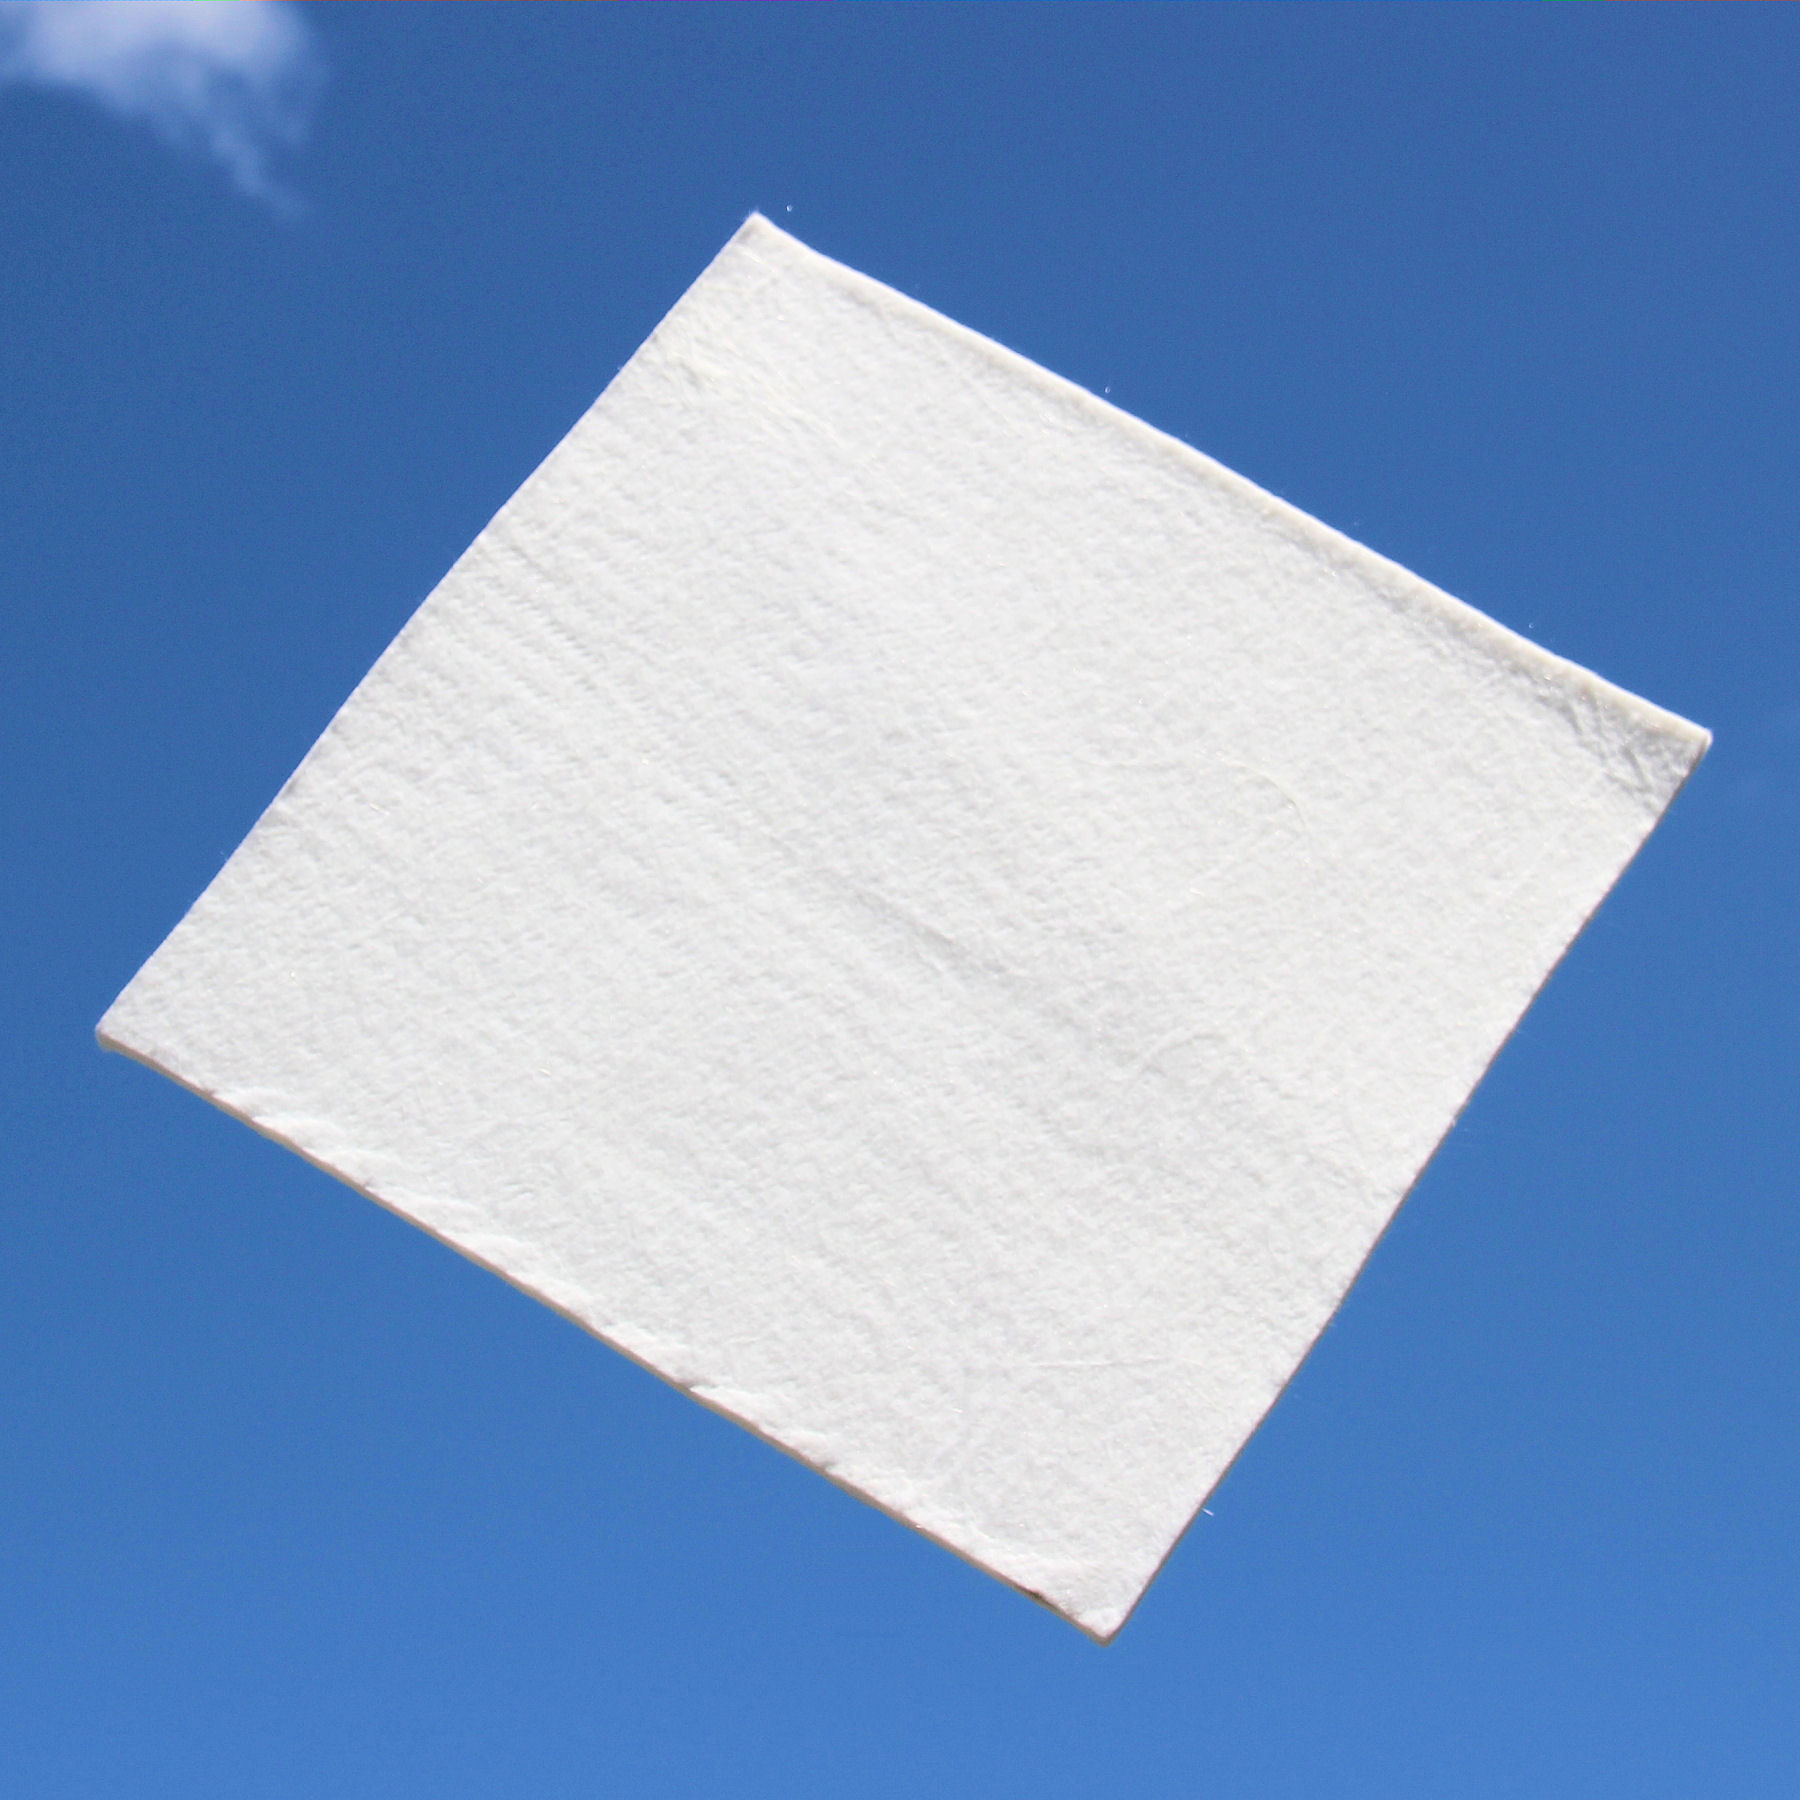 com planet earth s source for aerogel spaceloft superinsulating blanket from aspen aerogels